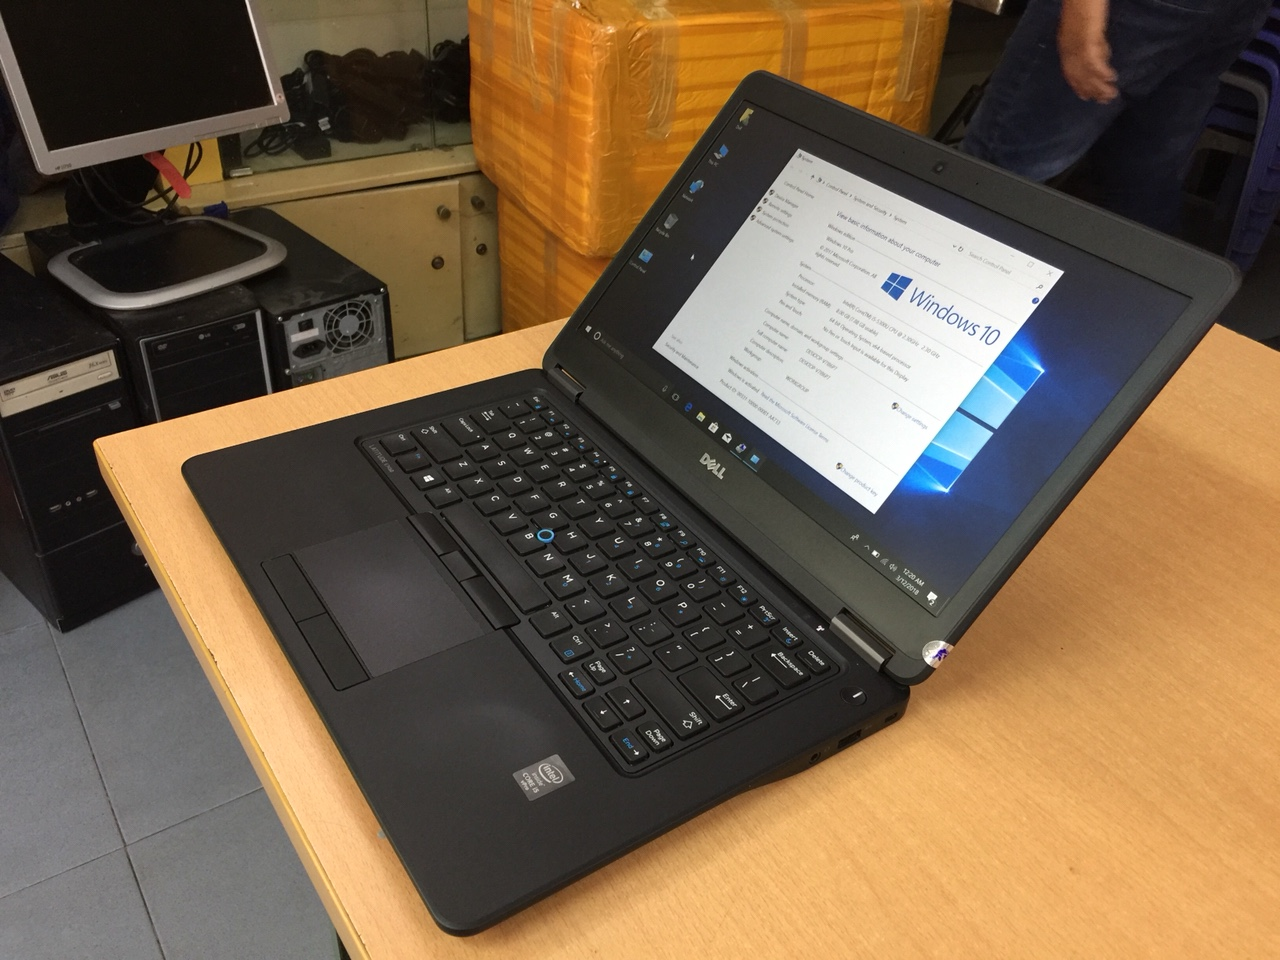 DELL LATITUDE E7450 I7 5600U 8GB 256GB 14